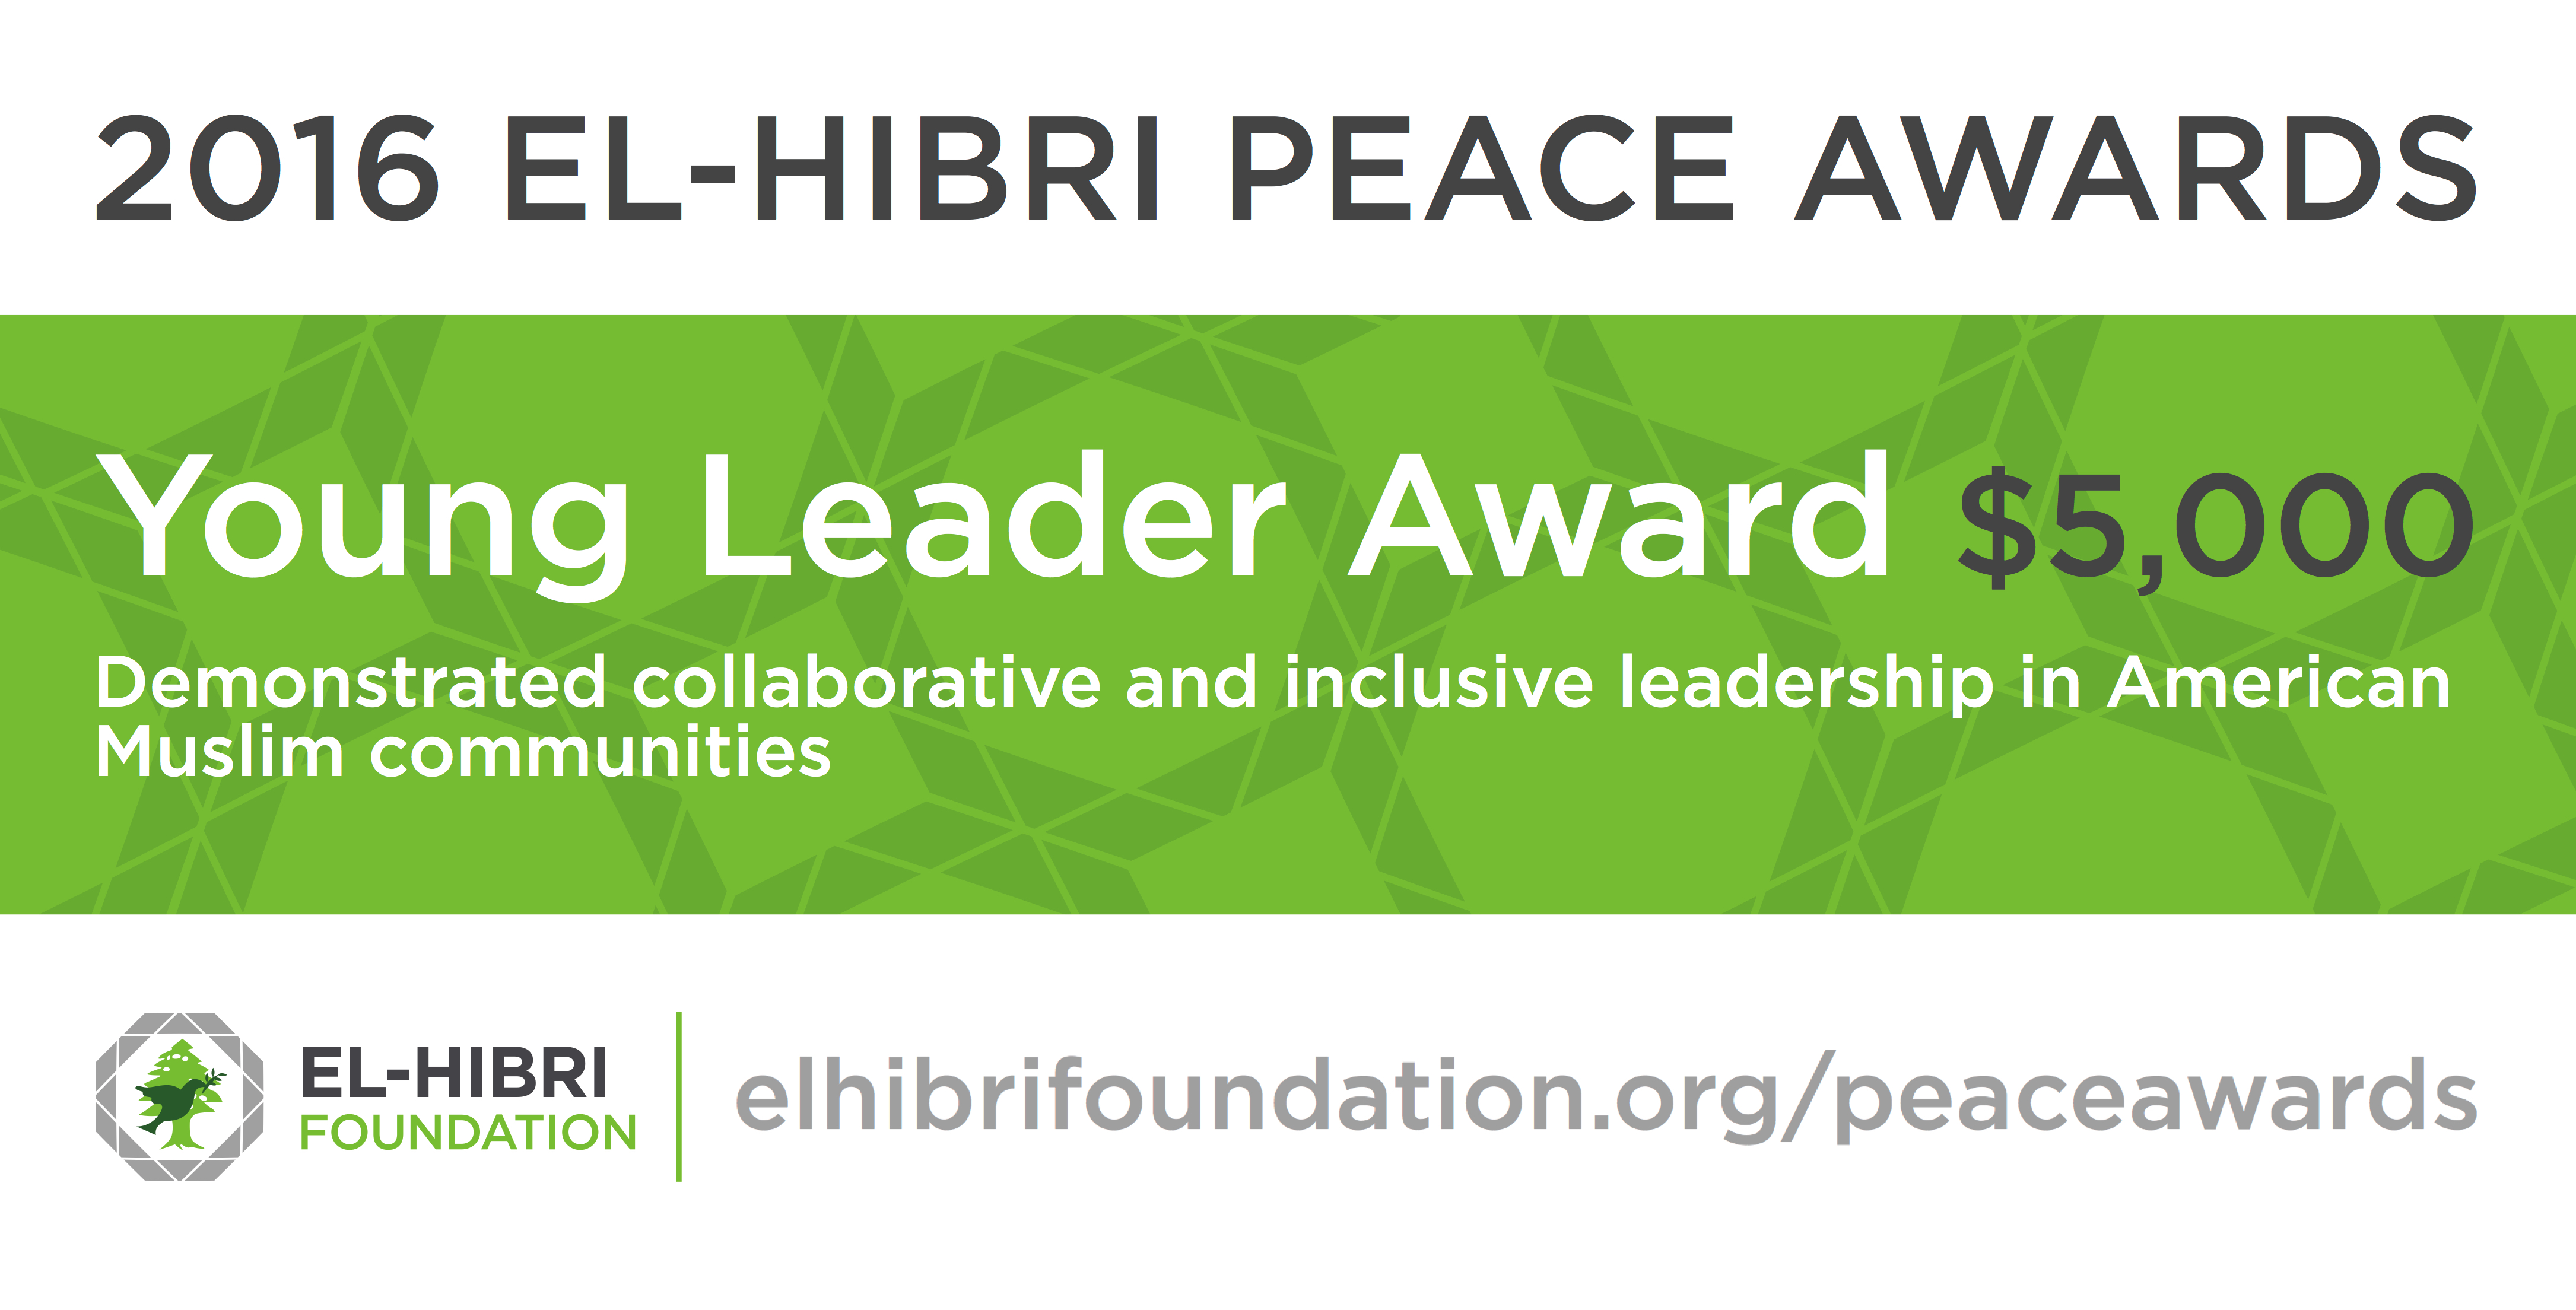 EHF - 2016 Young Leader Award Banner - Tw - 6-28-16